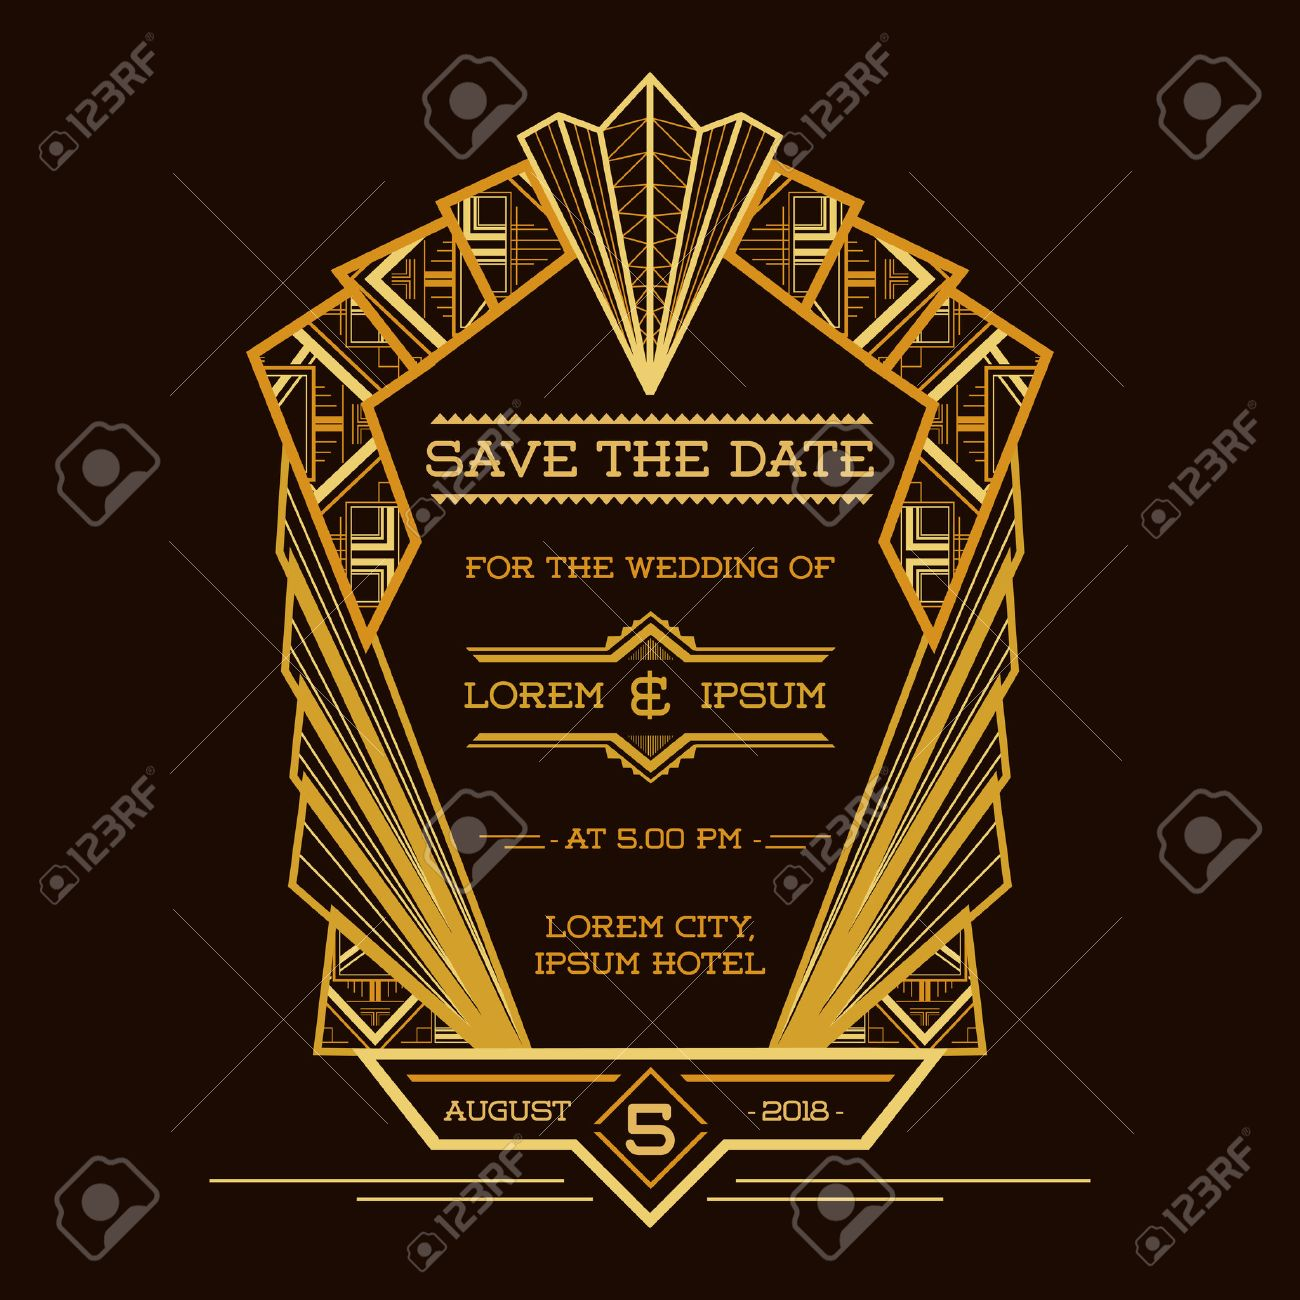 Save the date wedding invitation card art deco vintage style save the date wedding invitation card art deco vintage style in vector stock stopboris Image collections